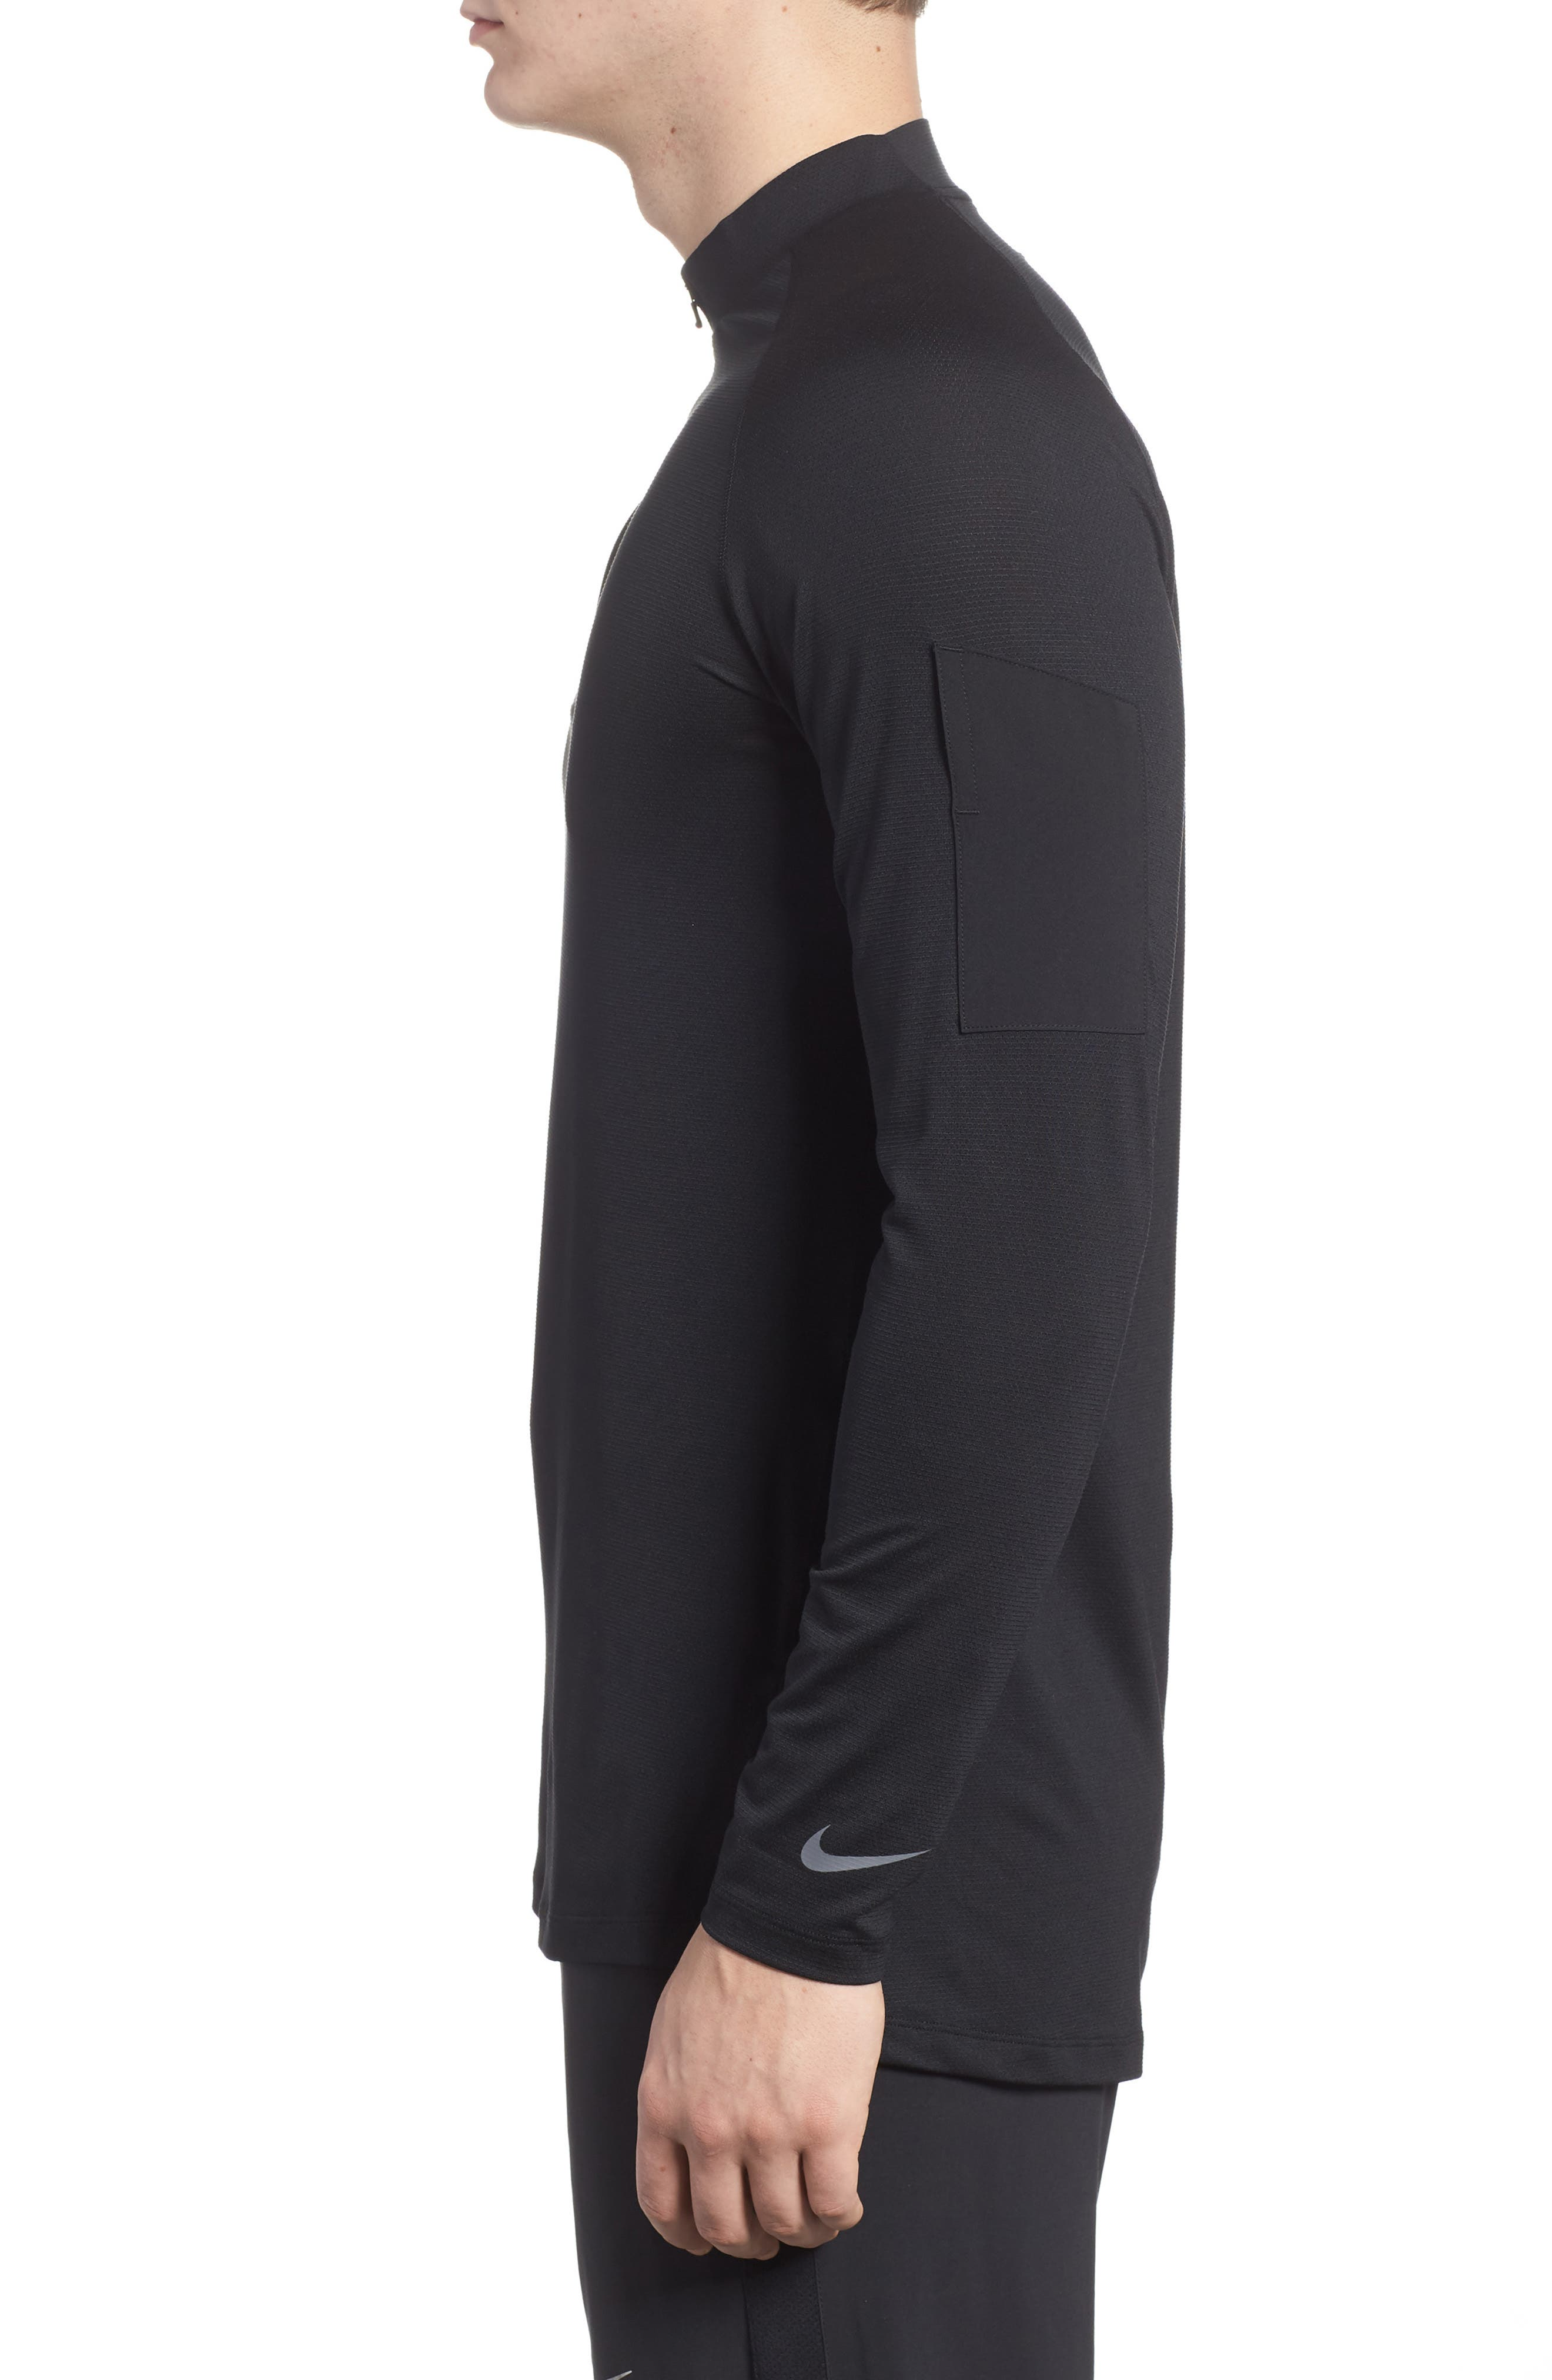 Pro Fitted Utility Dry Tech Sport Top,                             Alternate thumbnail 3, color,                             Black/ Black